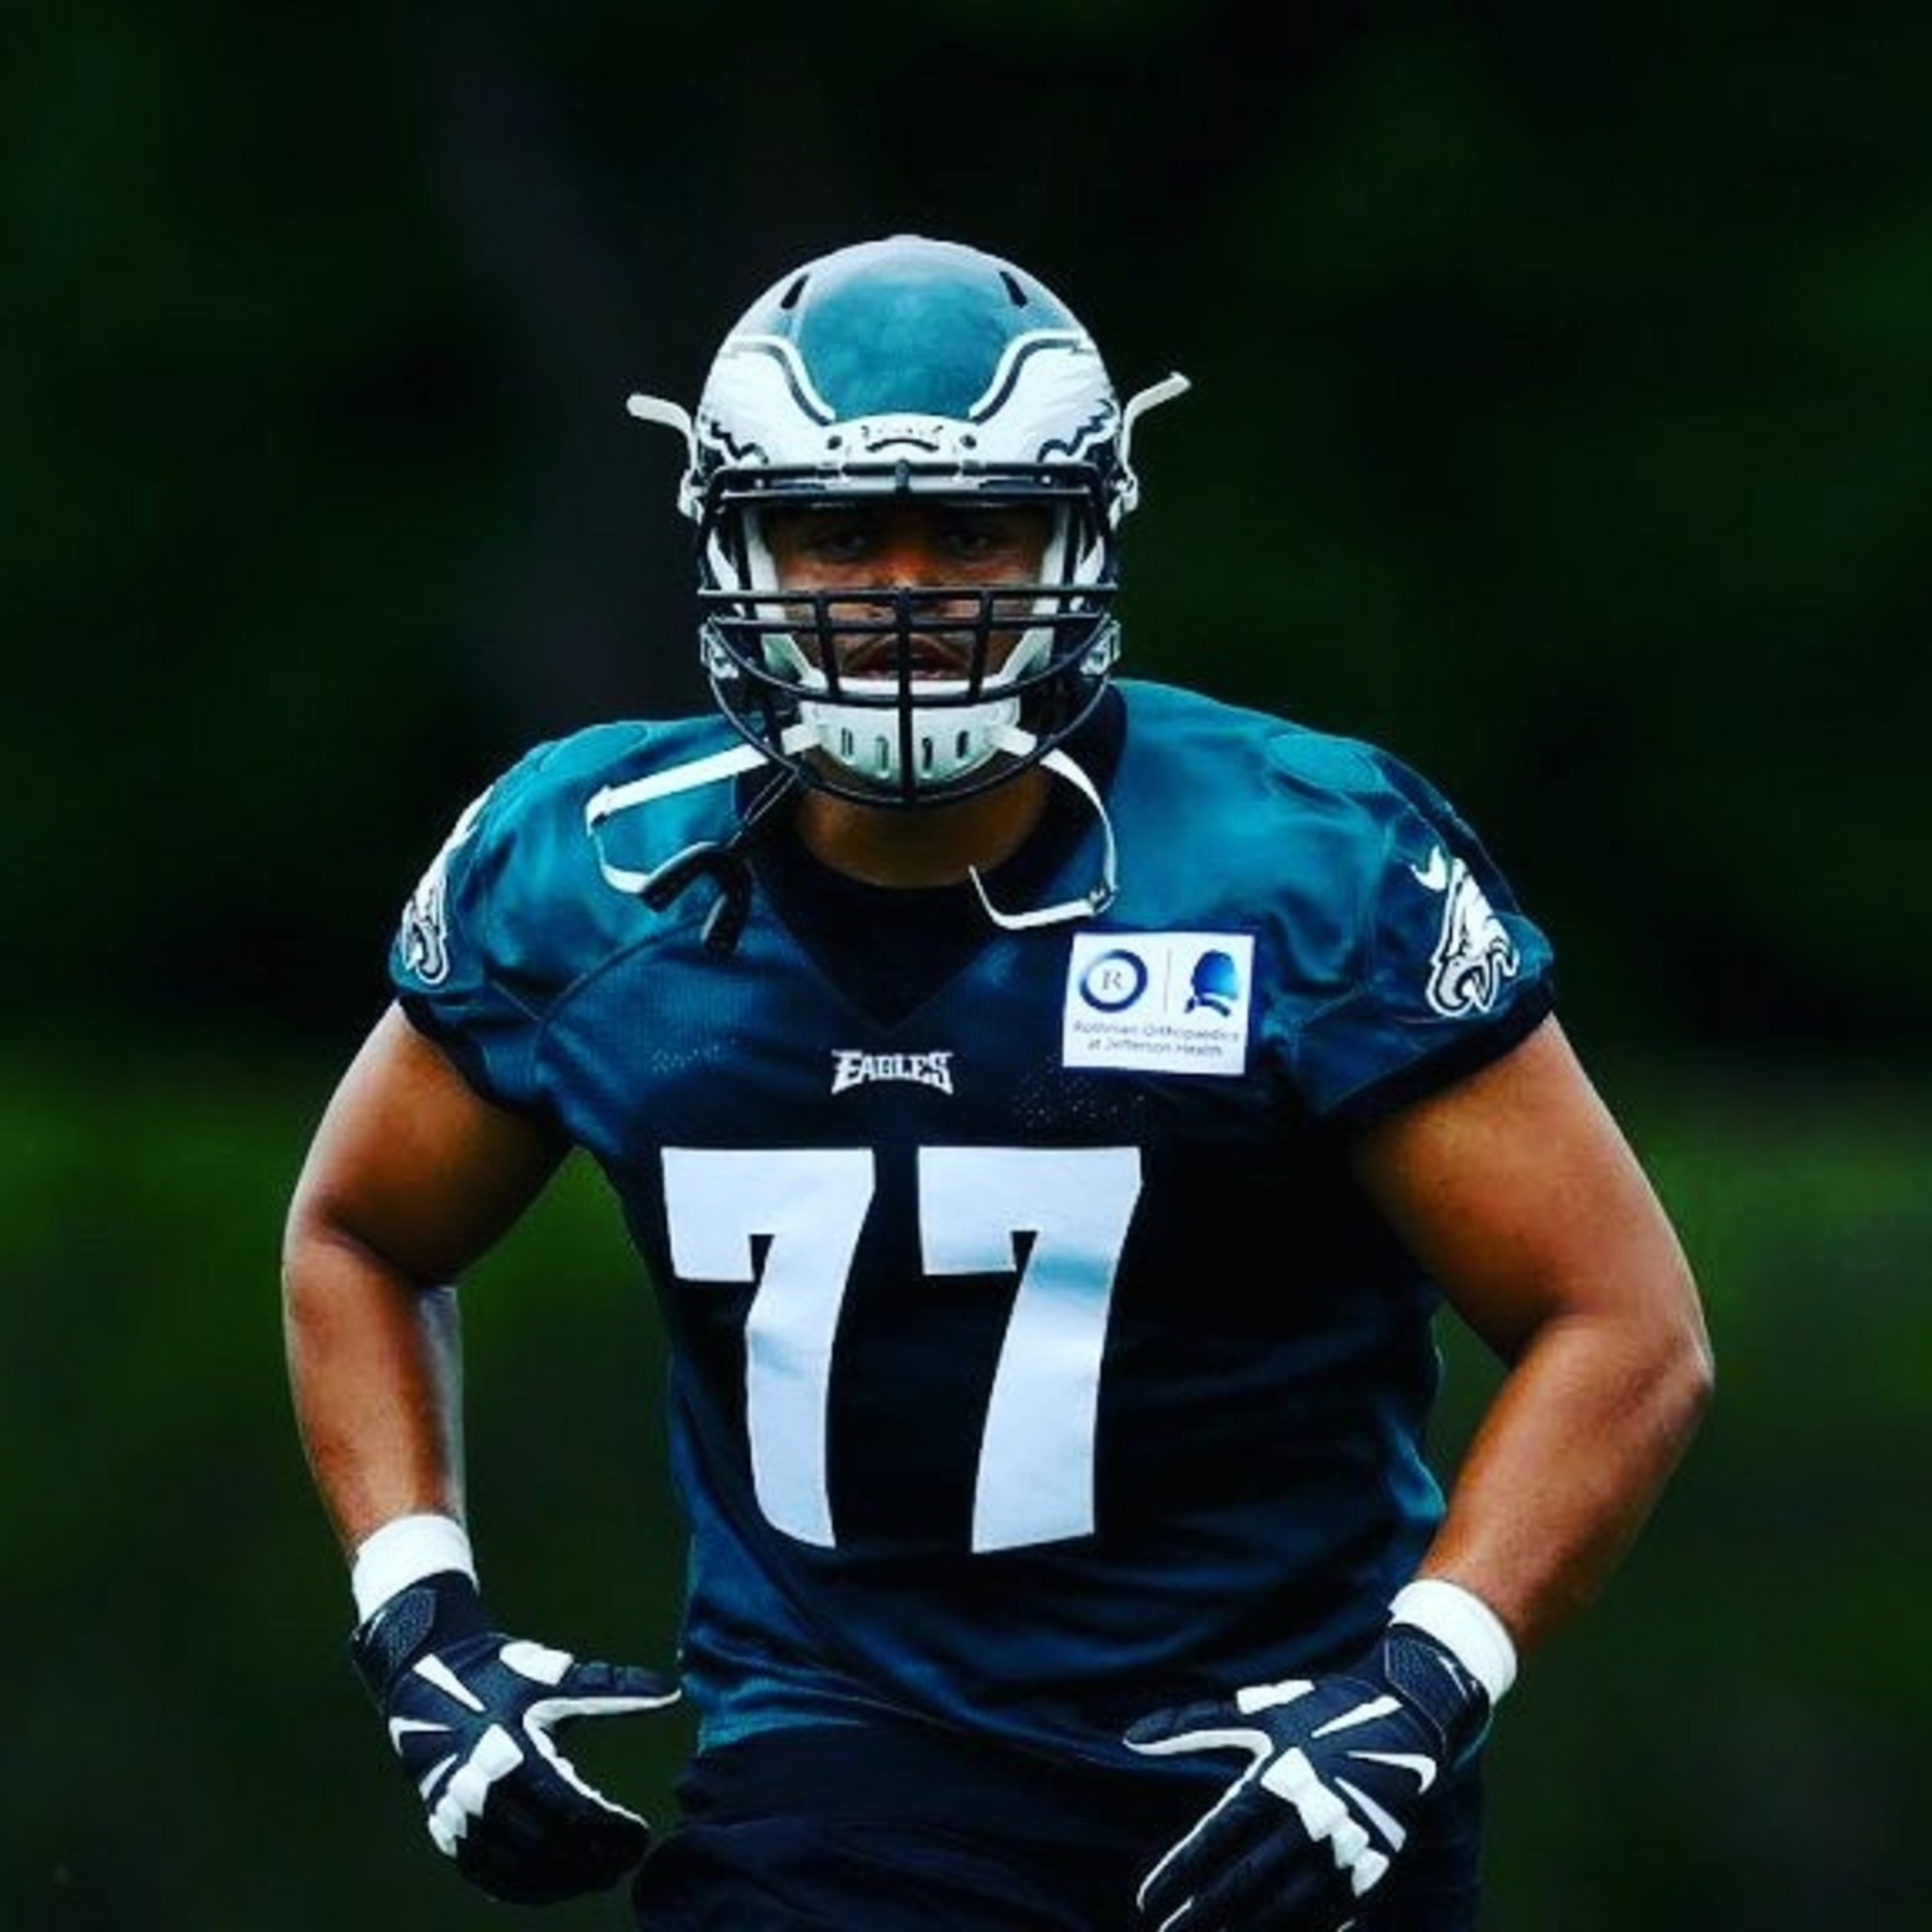 Phila-talk: Eagles Rookie standouts, 76ers bright future, Phillies looking good